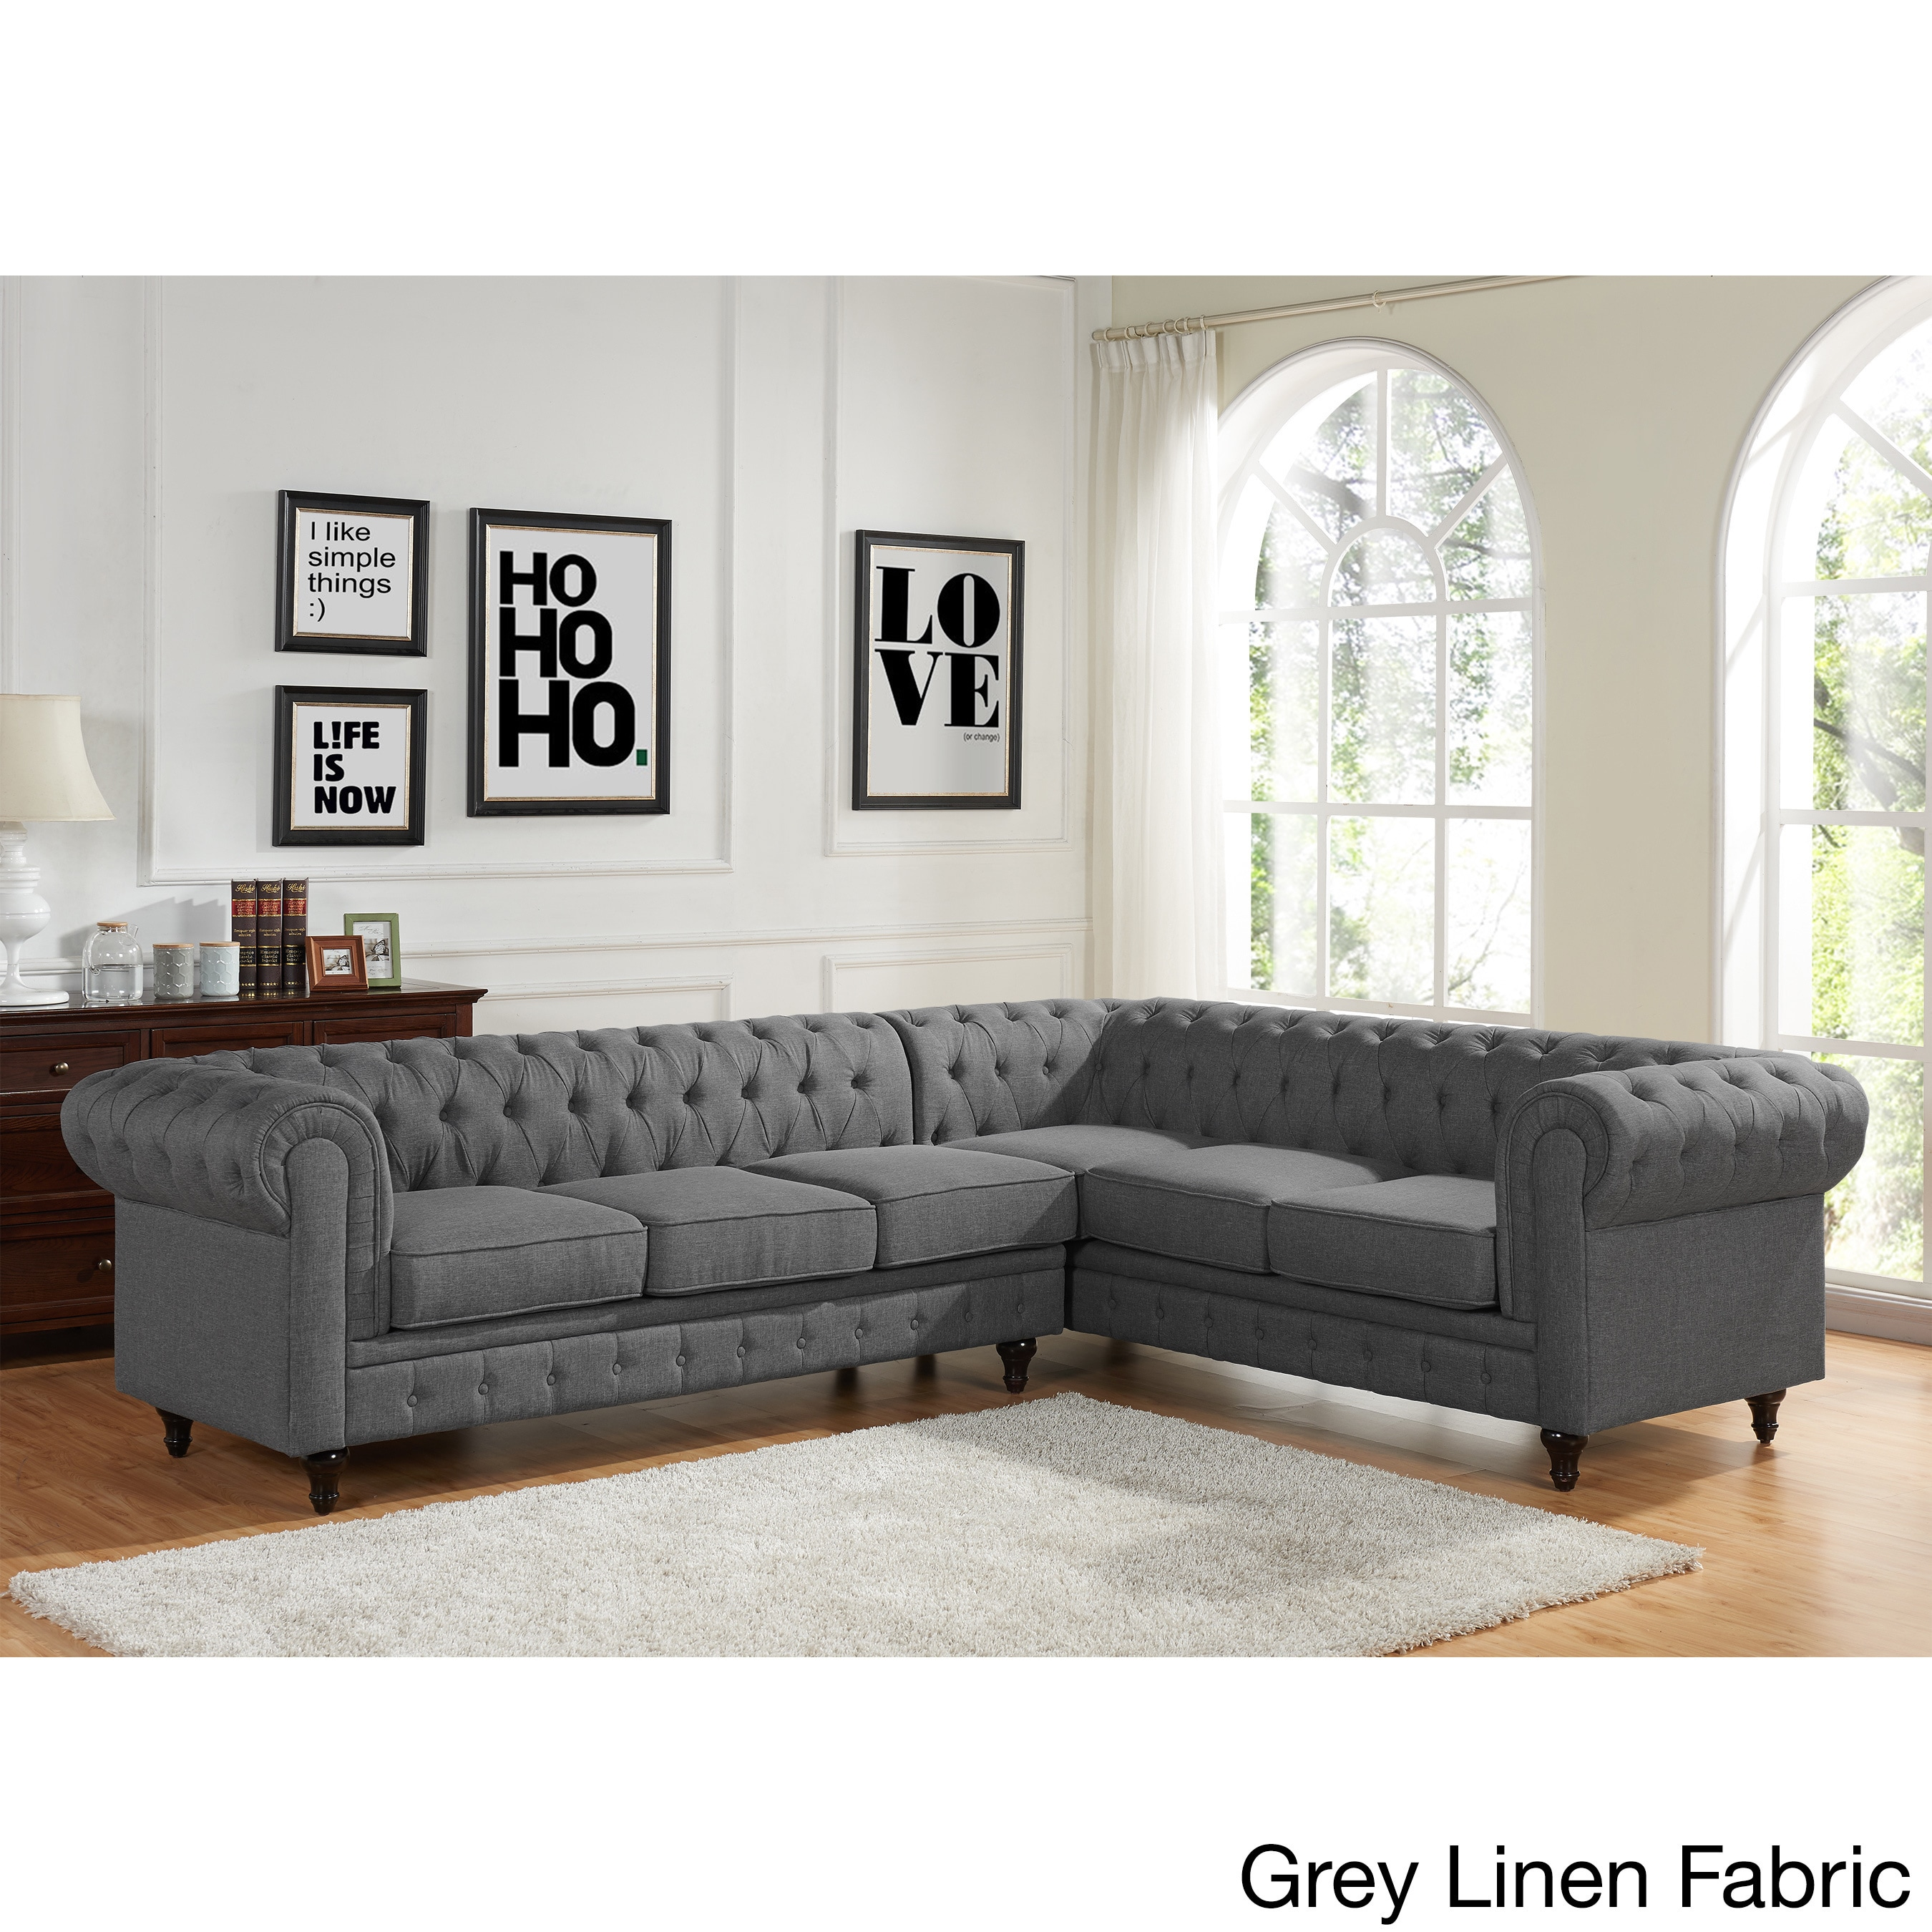 New Style Sofa Set Design Sophia Modern Style Tufted Rolled Arm Left Facing Chaise Sectional Sofa